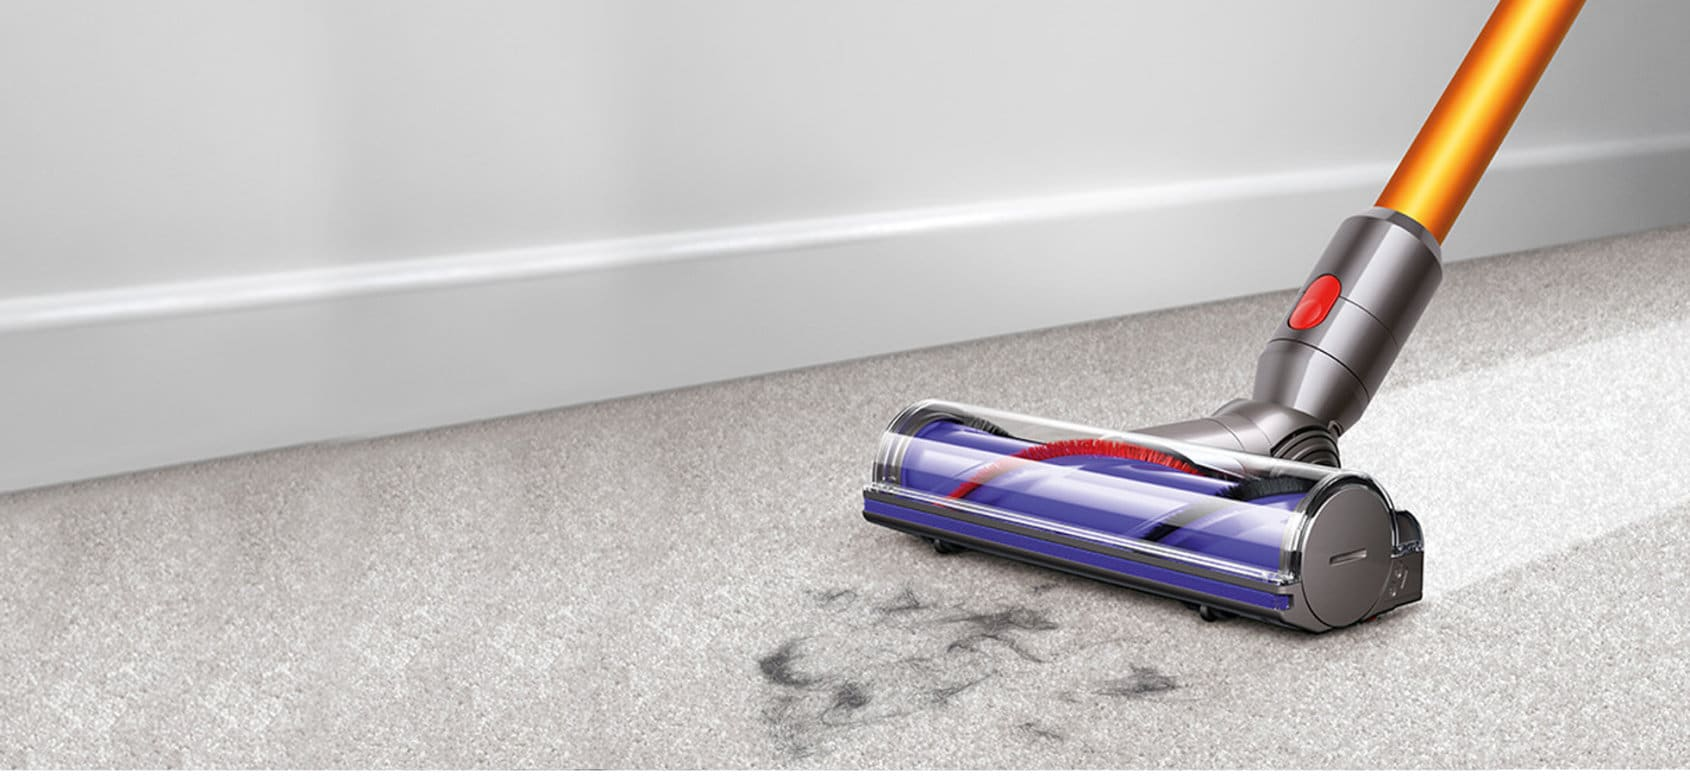 Cleans Carpets 5afcb5c39510a 1690xr